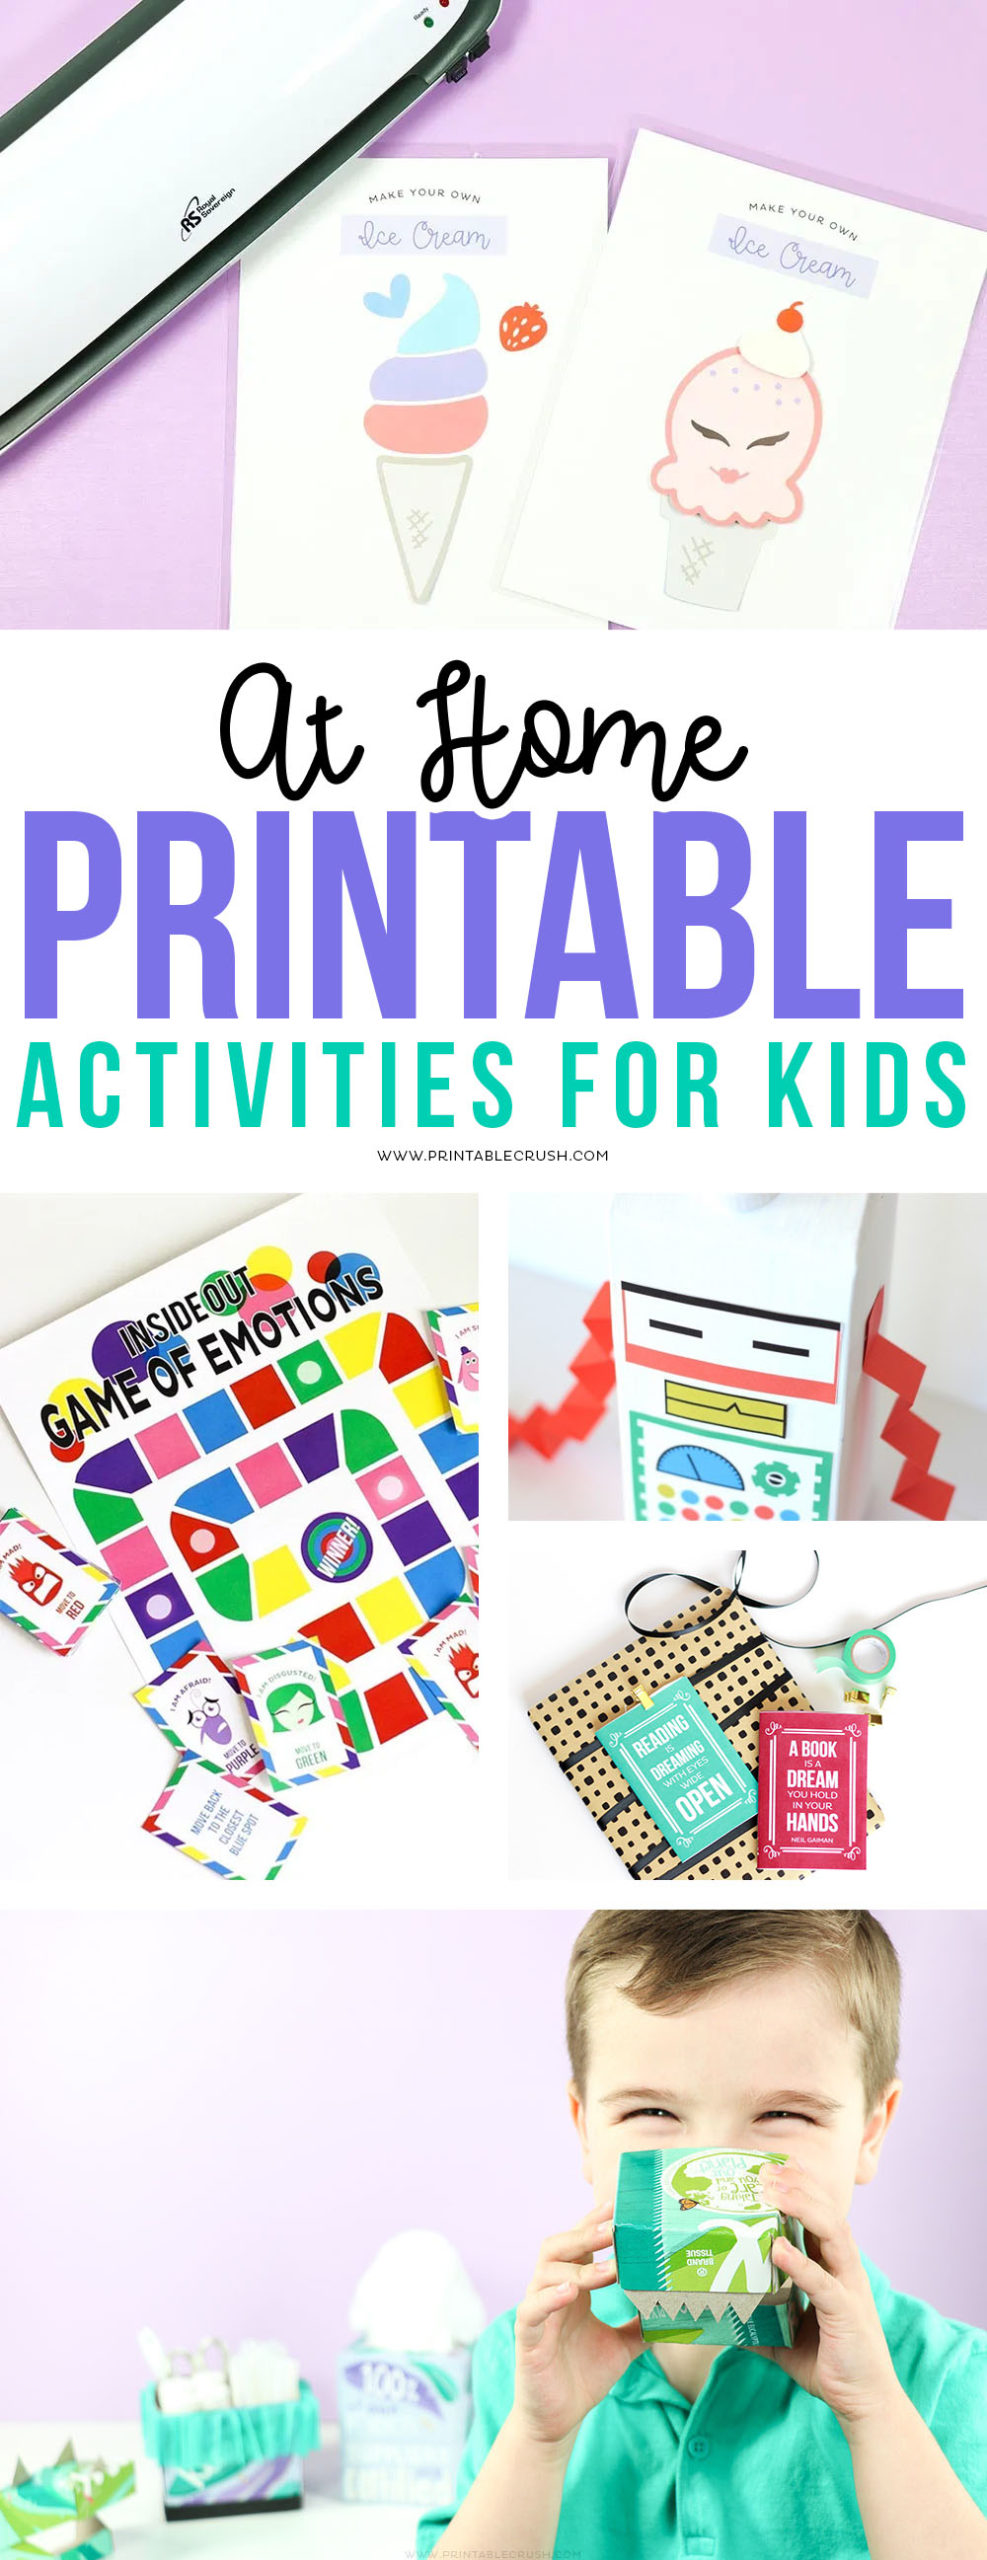 At Home Printable Activities for Kids via @printablecrush